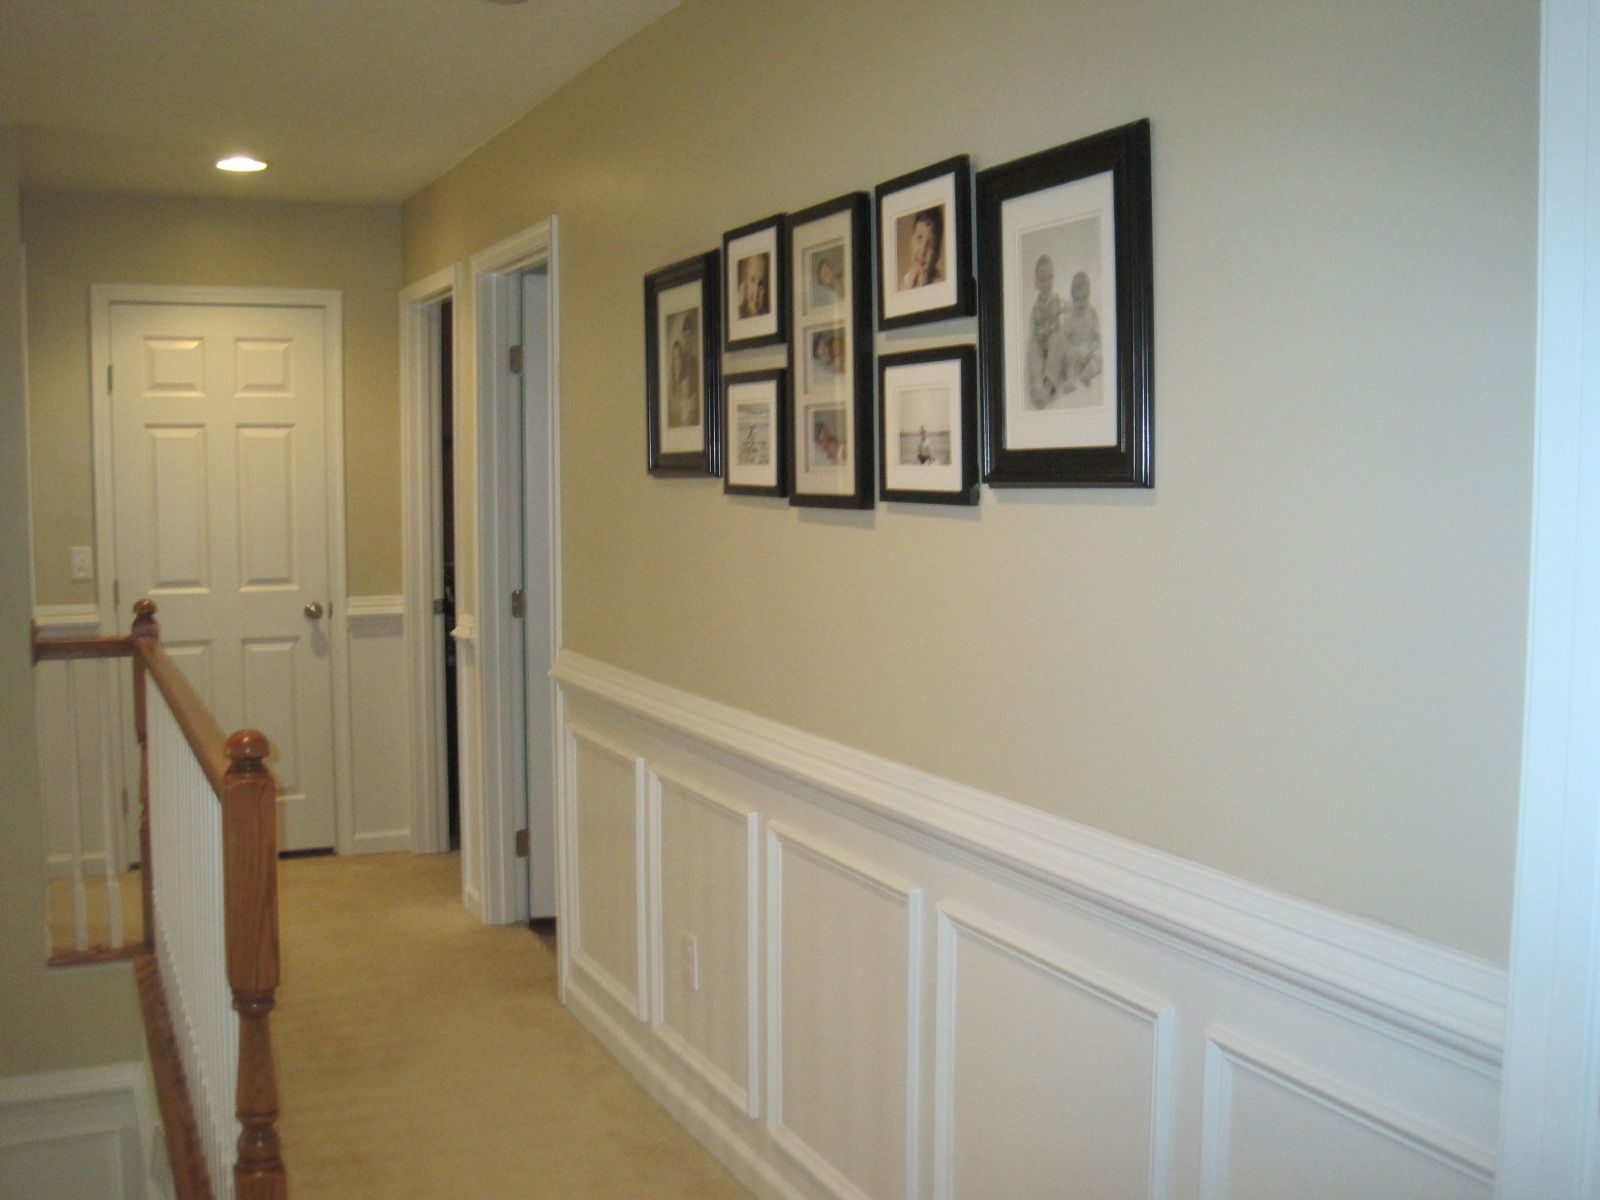 Uncategorized Wood Paneling Makeover Ideas pin by aura lacruz on wood paneling ideas colonial homes wainscoting idea for hallway white wall inspiring panelling decors indoor design splendid wainscoting